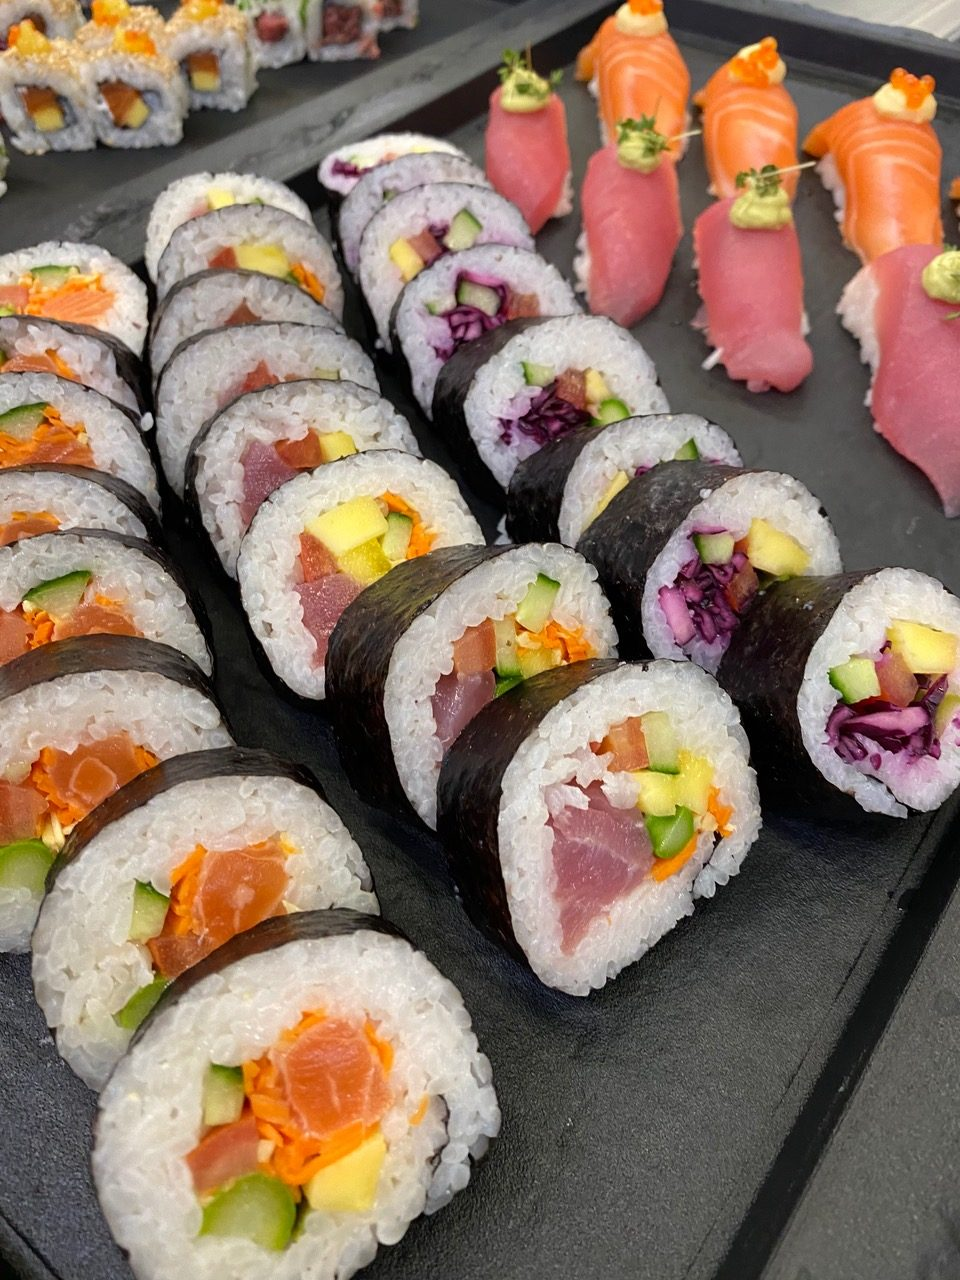 Selbstgemachtes Sushi ab 22.09.2020 bei uns!